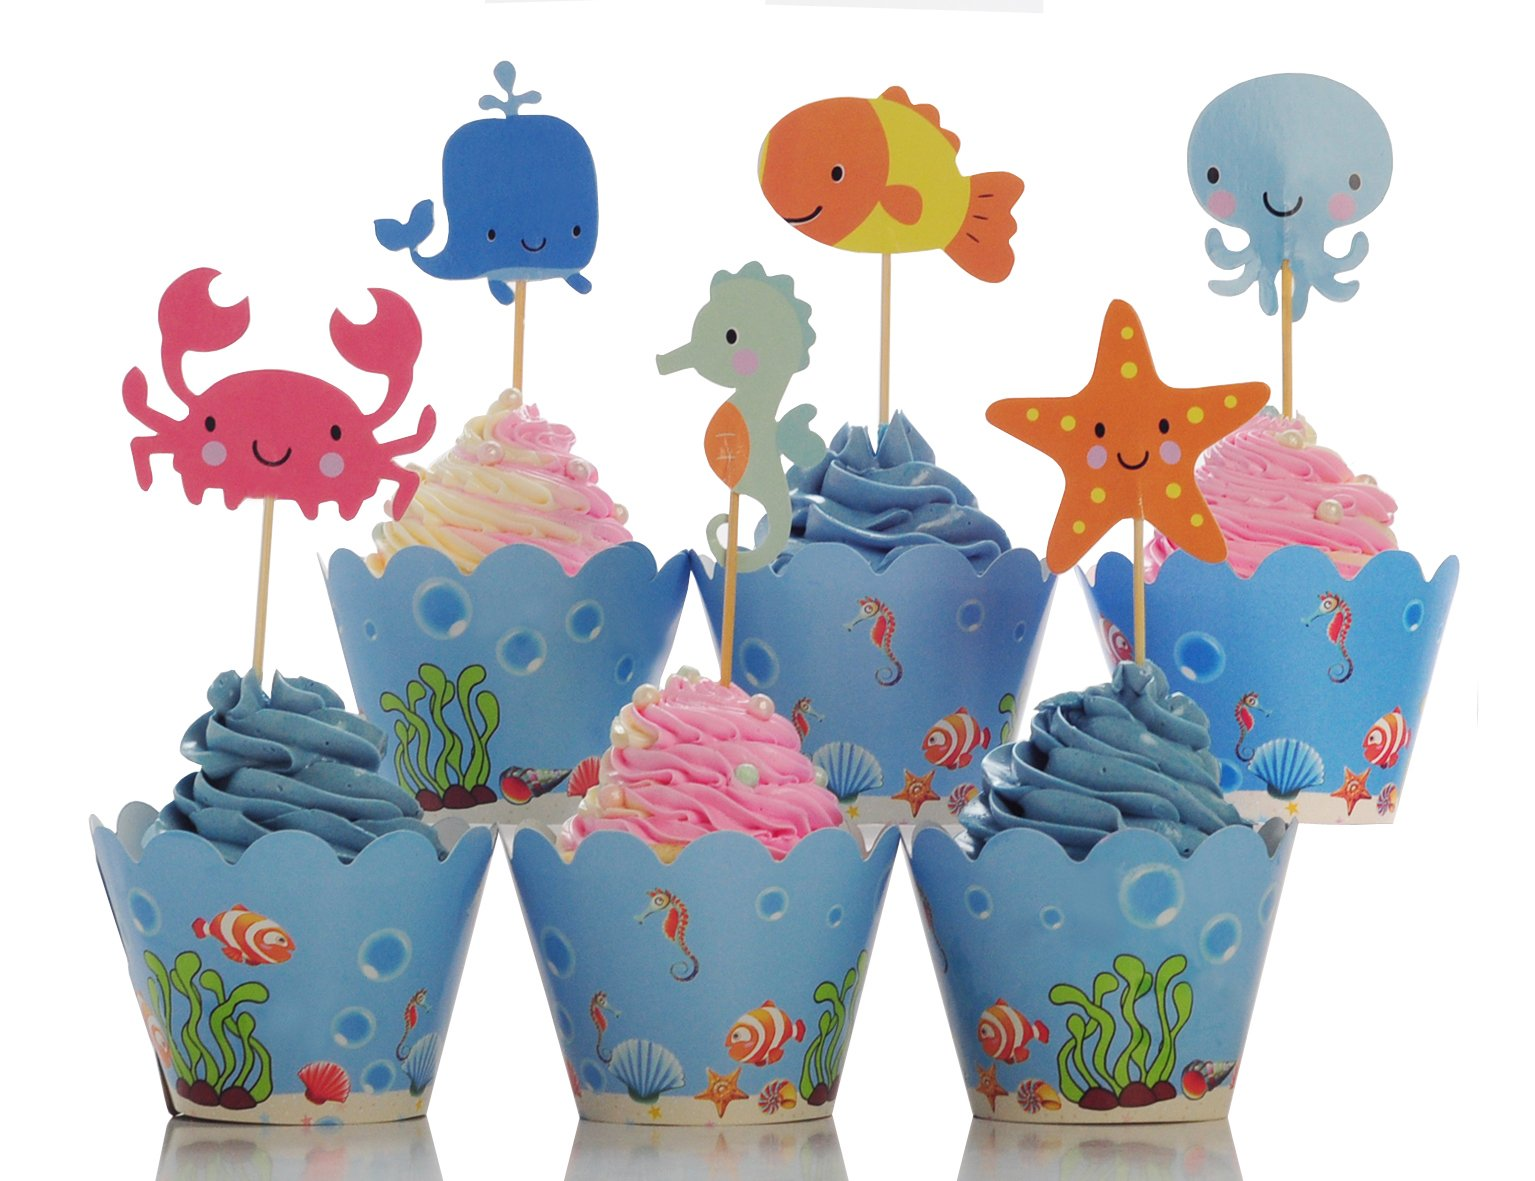 BeBeFun Adjustable Cupcake Wrappers and Toppers Under the Sea and Marin Animals Theme for Kids Birthday Party Supplies and Special Events Supplies 24pcs Wrappers and 24pcs Toppers in Pack. by BeBeFun